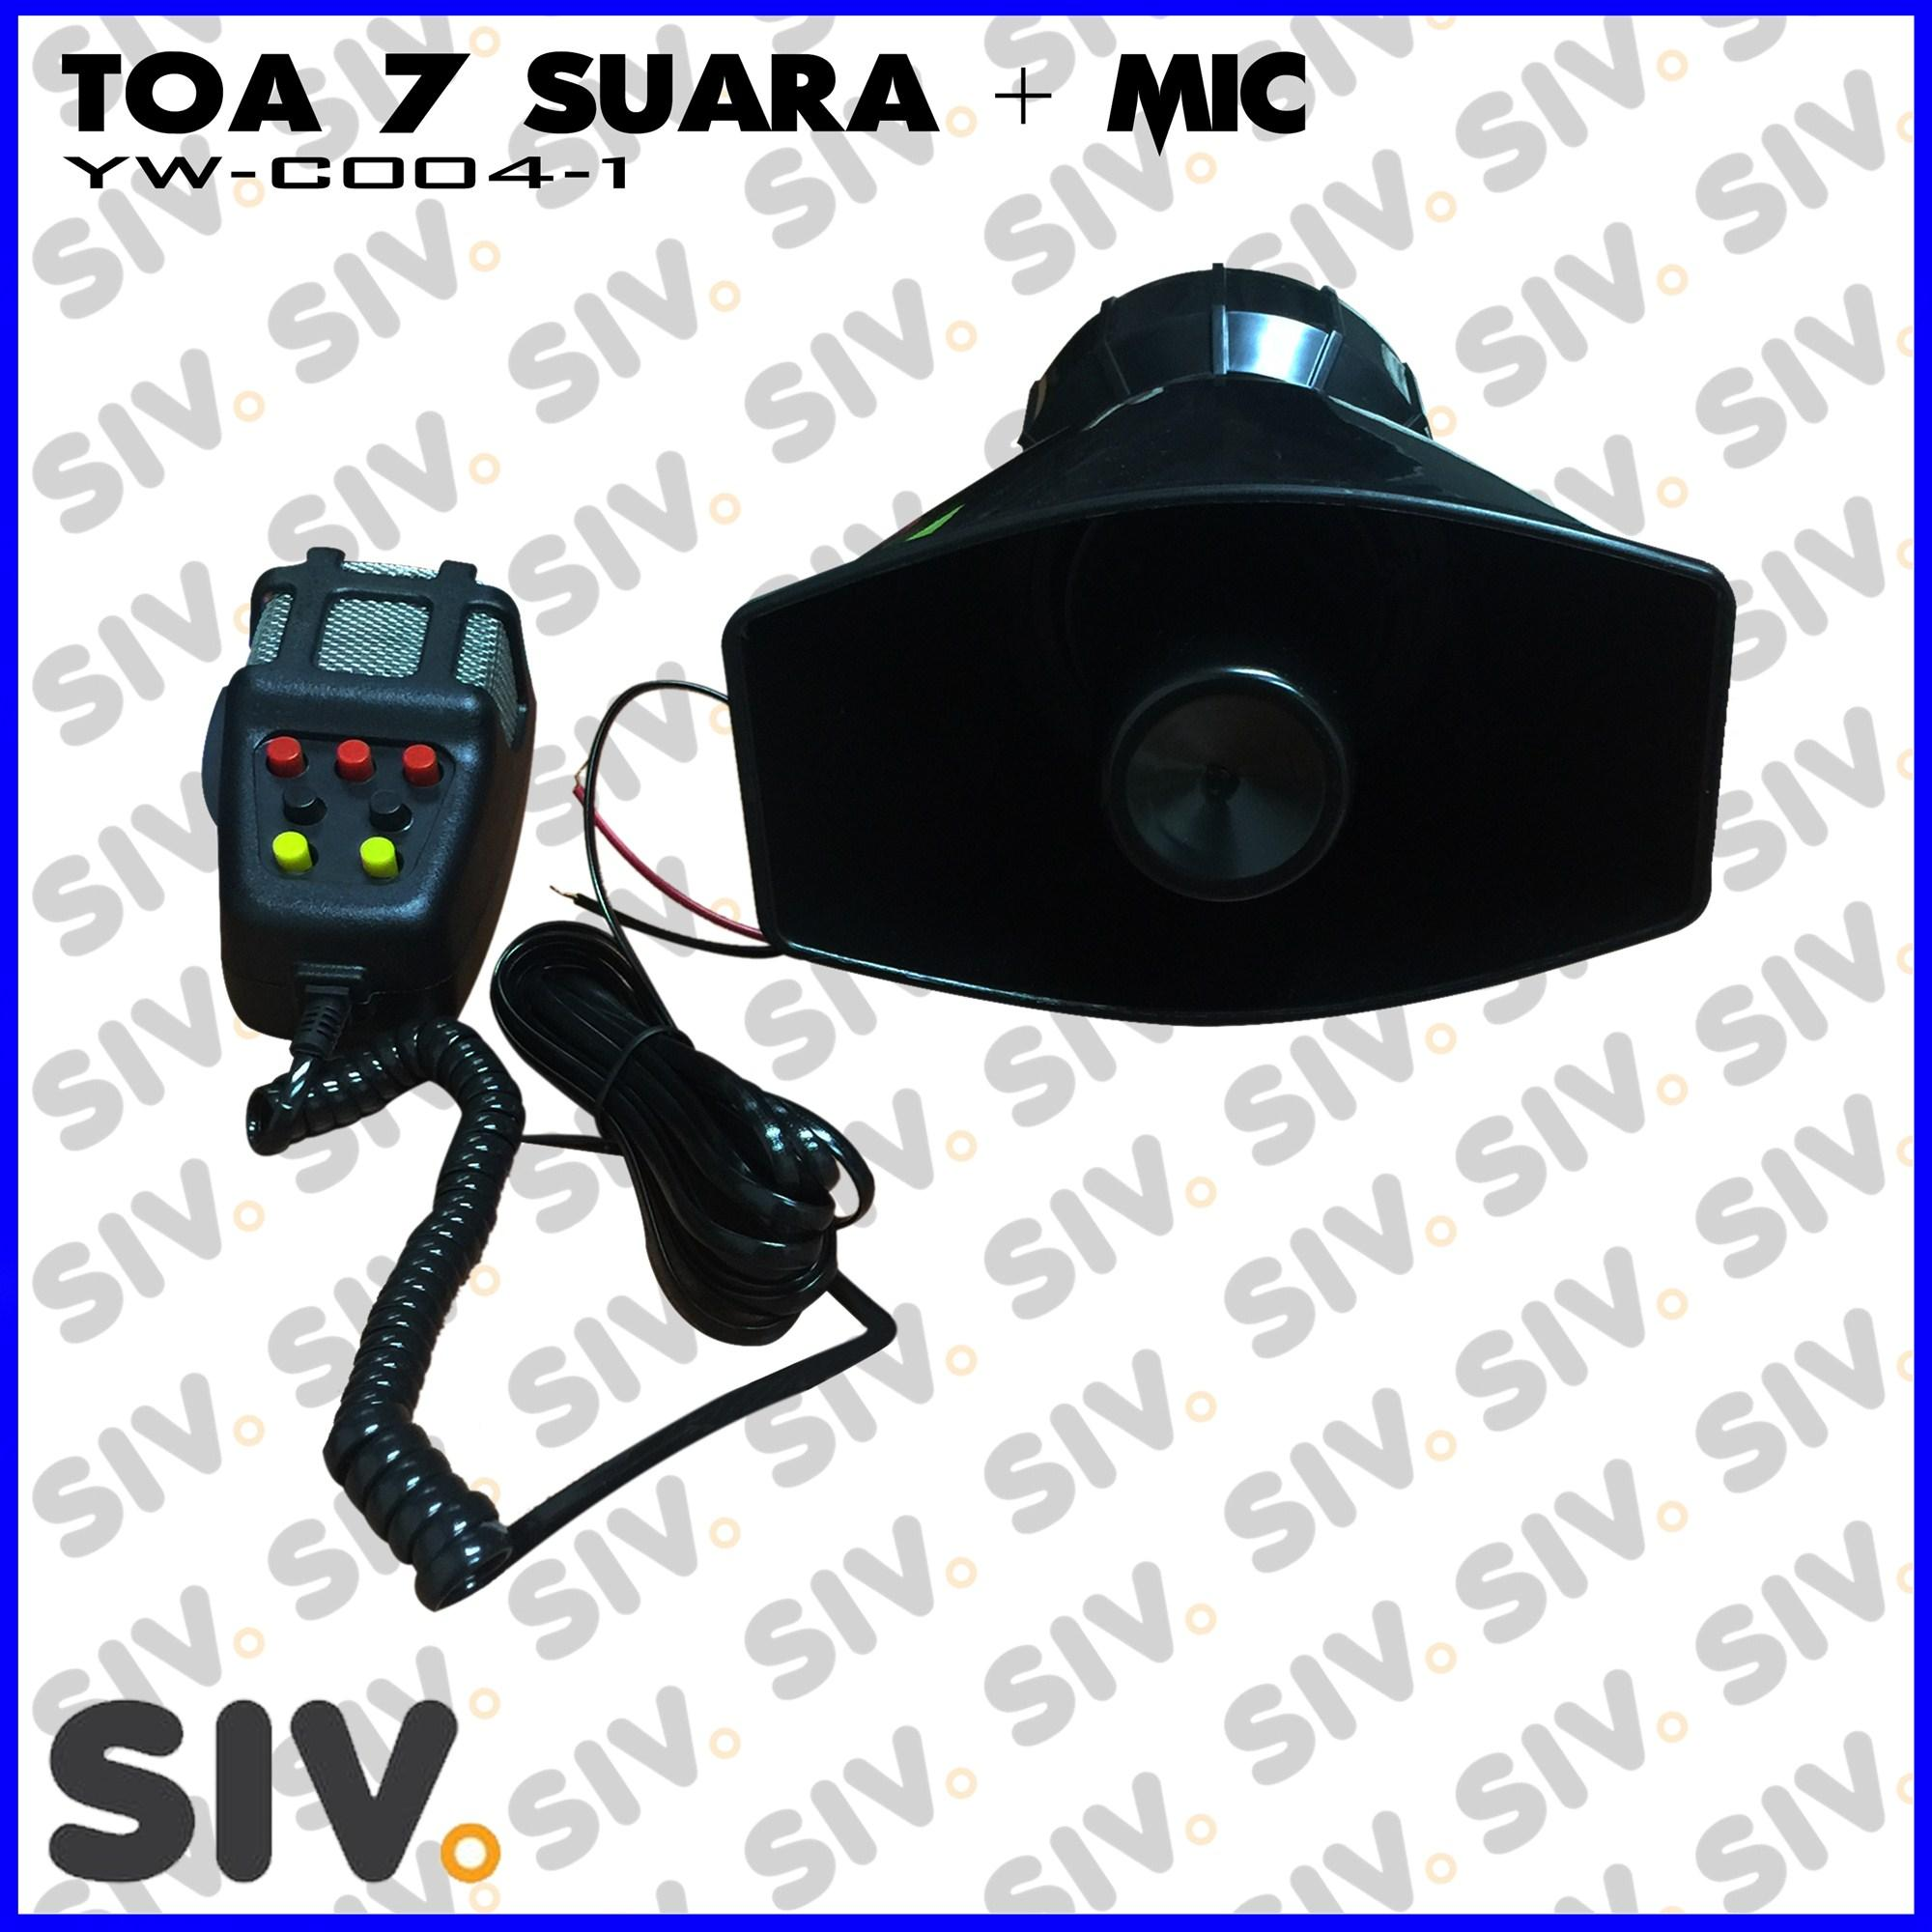 Buy Sell Cheapest Mic Toa Zm370hs Best Quality Product Deals Zm 270 7 Suara Dan Yw C004 1